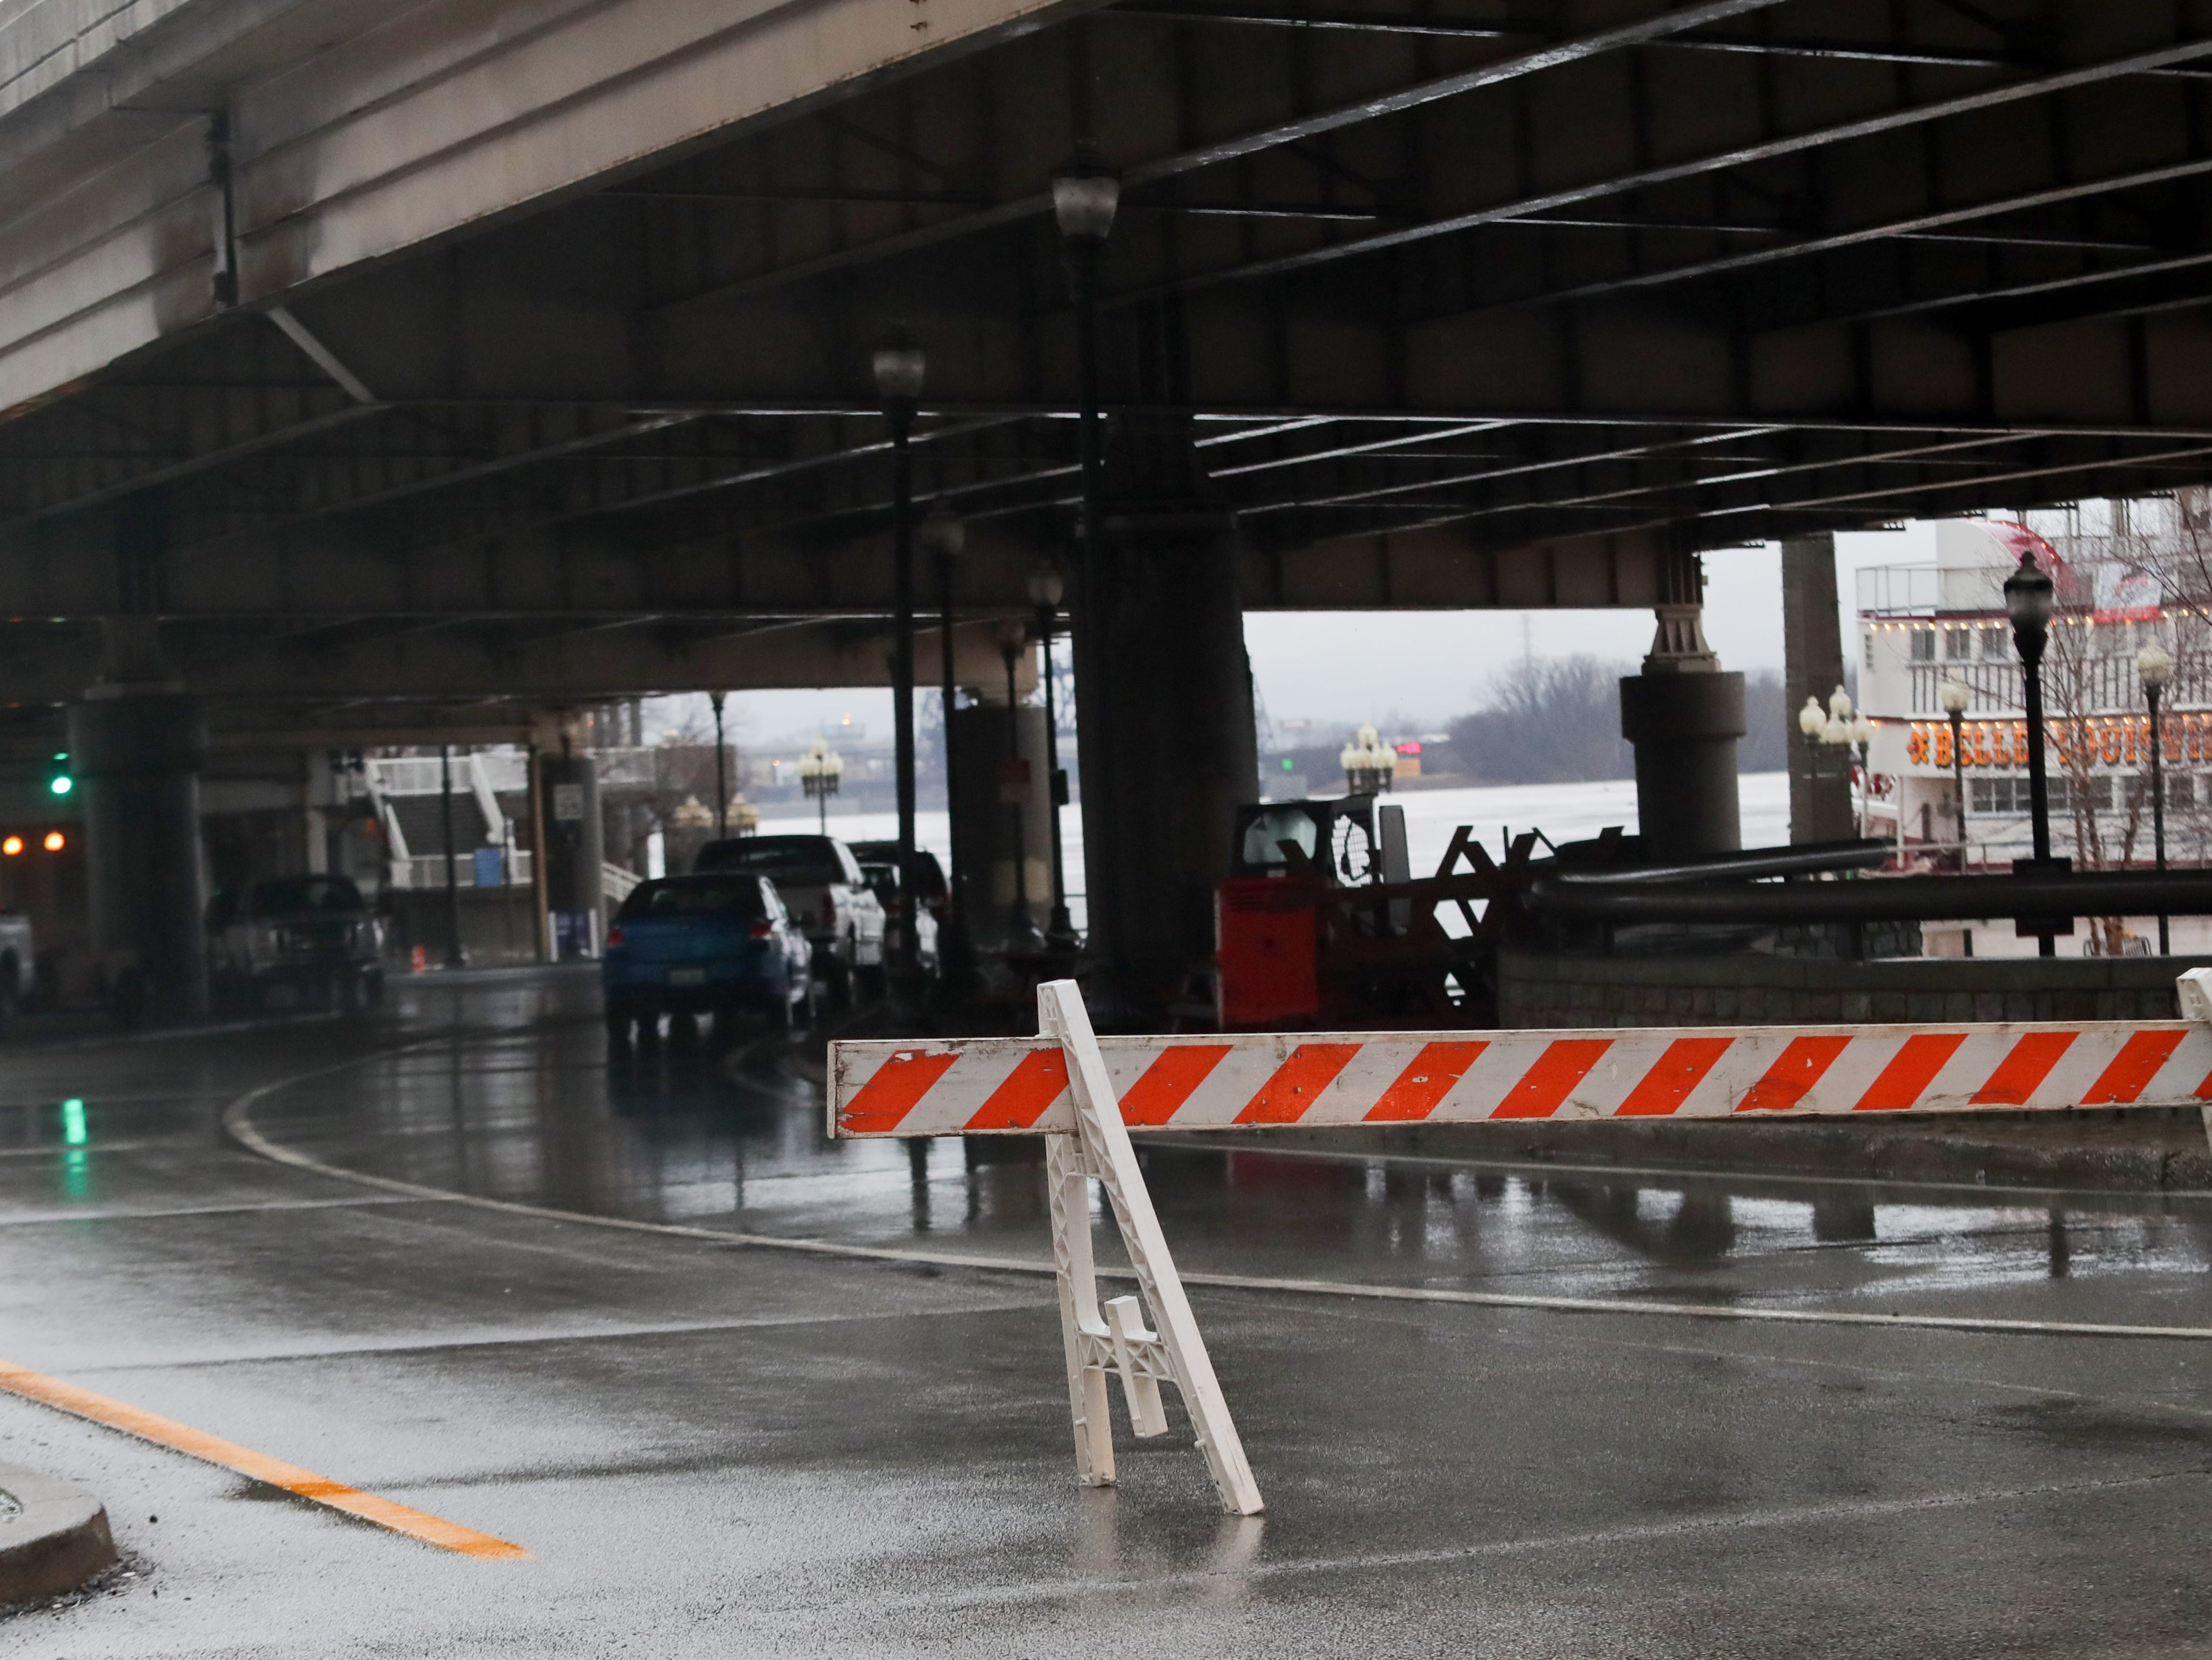 River Road is closed at the 3rd St. Exit off of I-64. Feb. 12, 2019